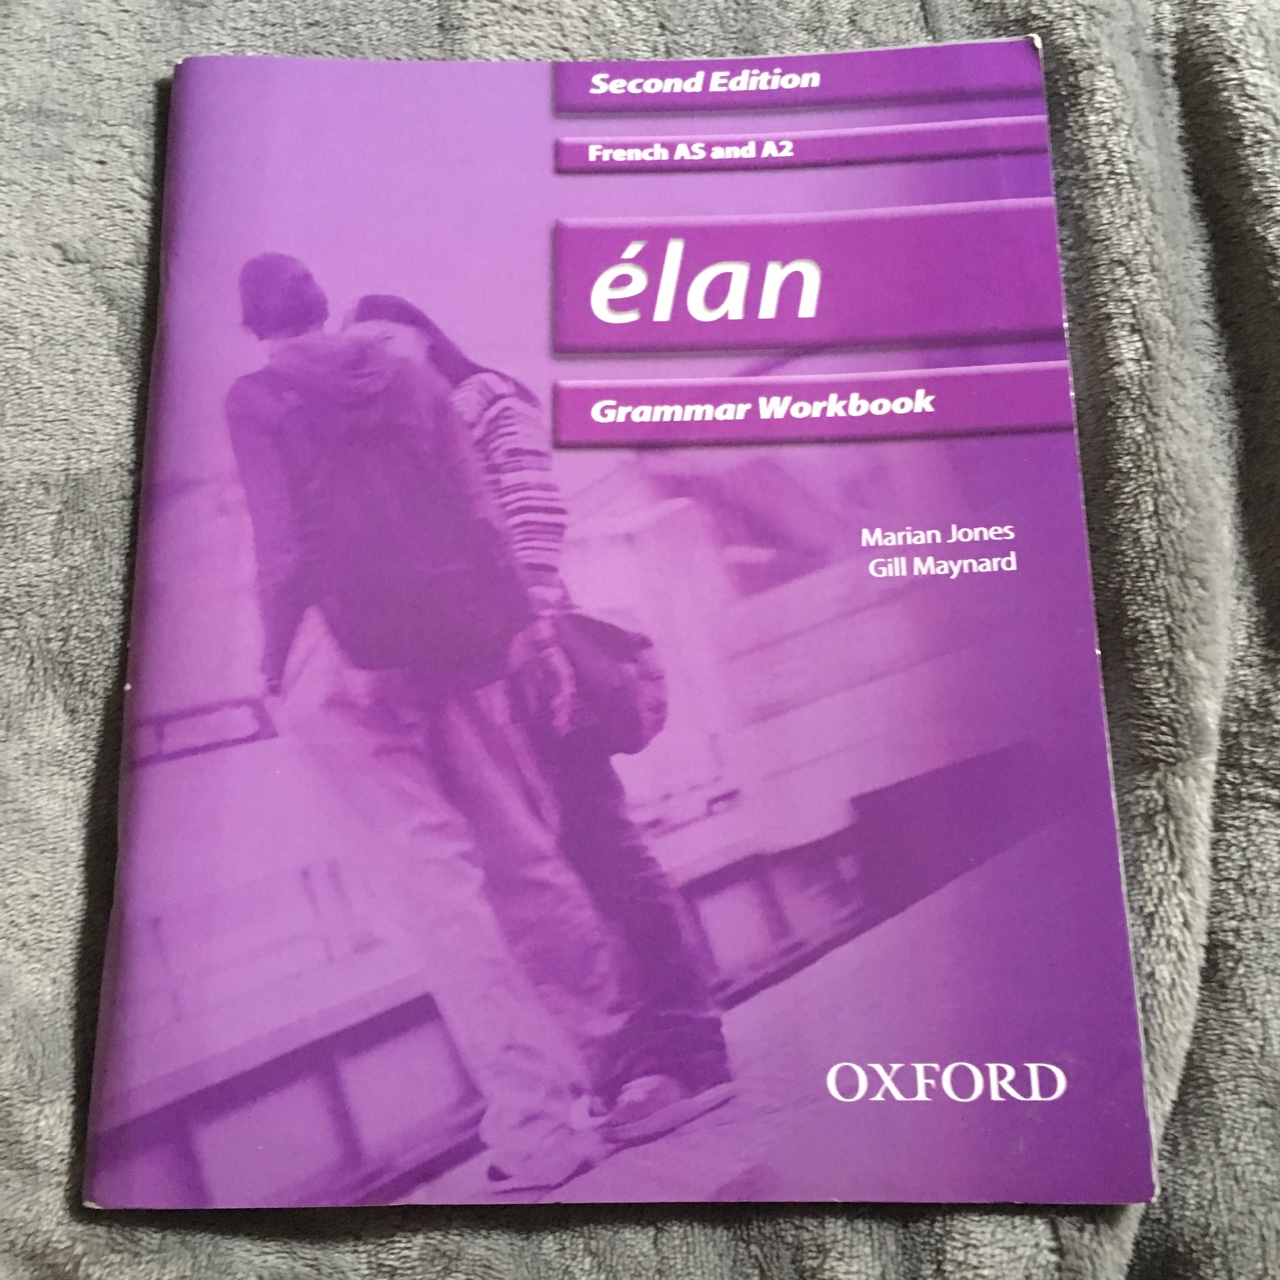 French A level grammar book second edition as and a2